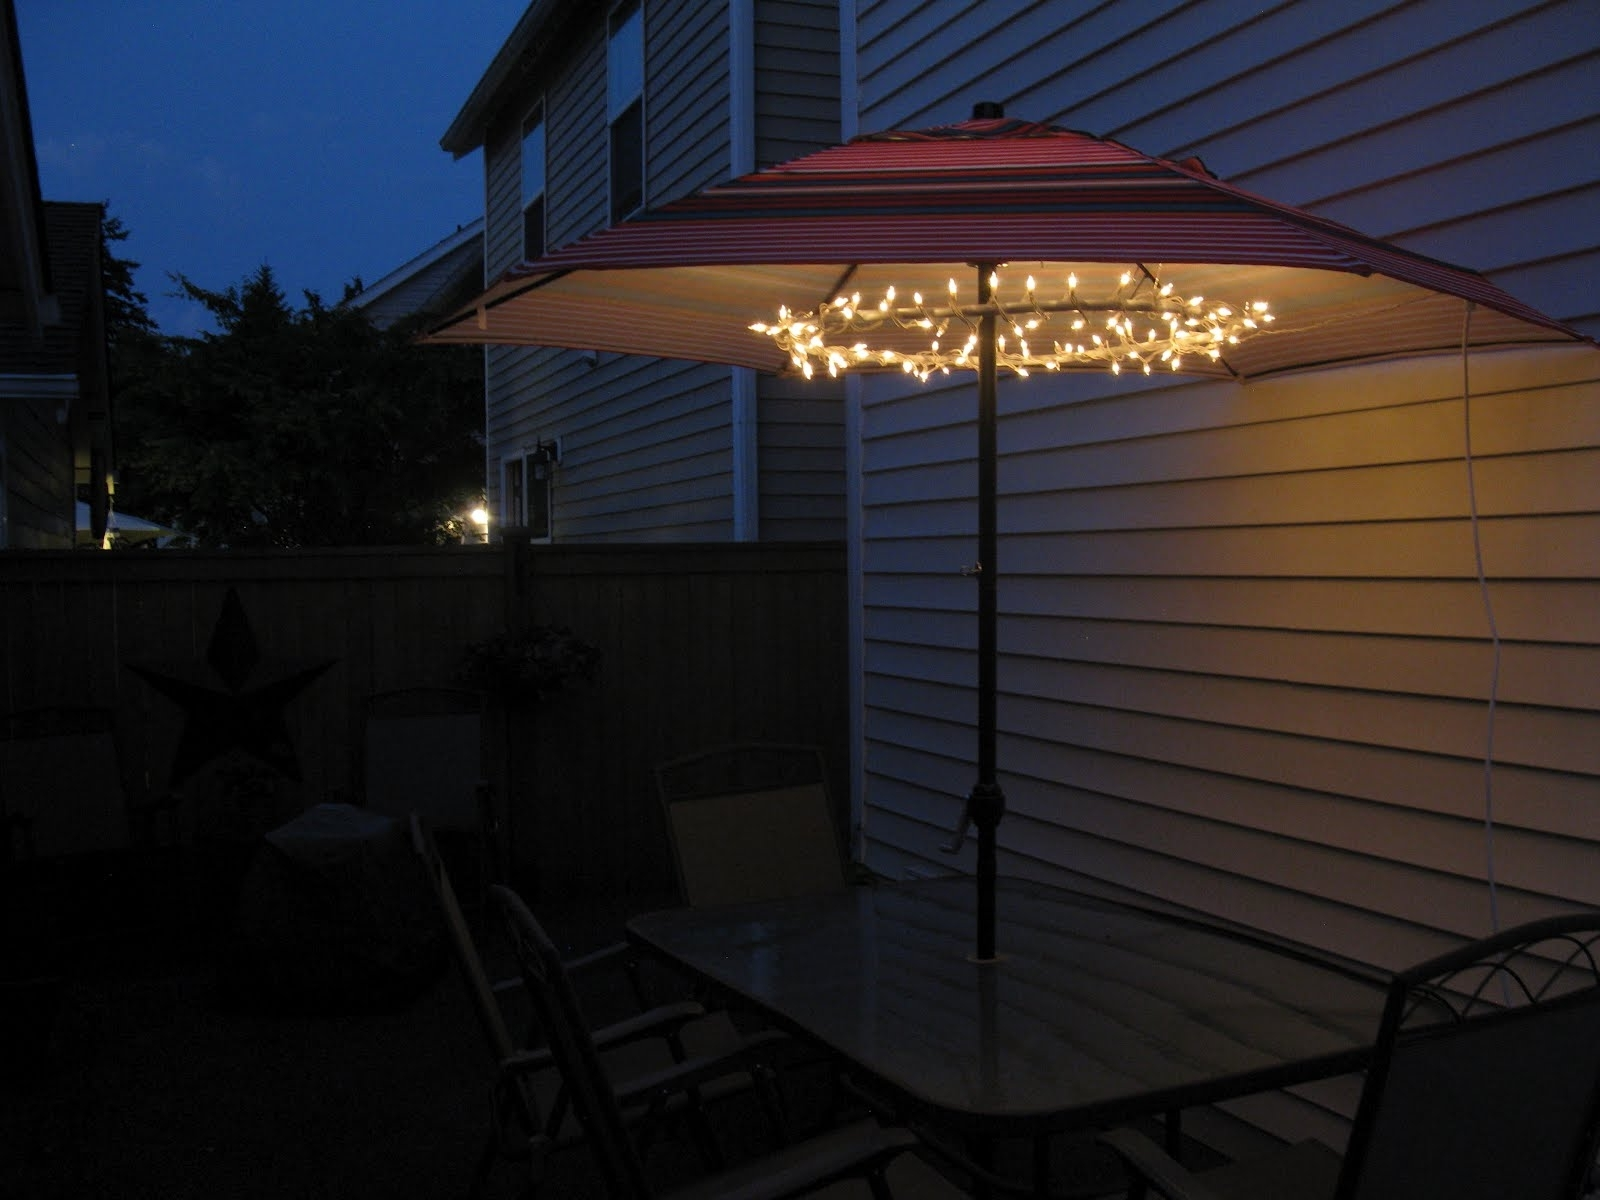 2019 Amazing Patio Umbrella Lights — Wilson Home Ideas : Beautiful Patio Inside Patio Umbrellas With Solar Lights (Gallery 12 of 20)